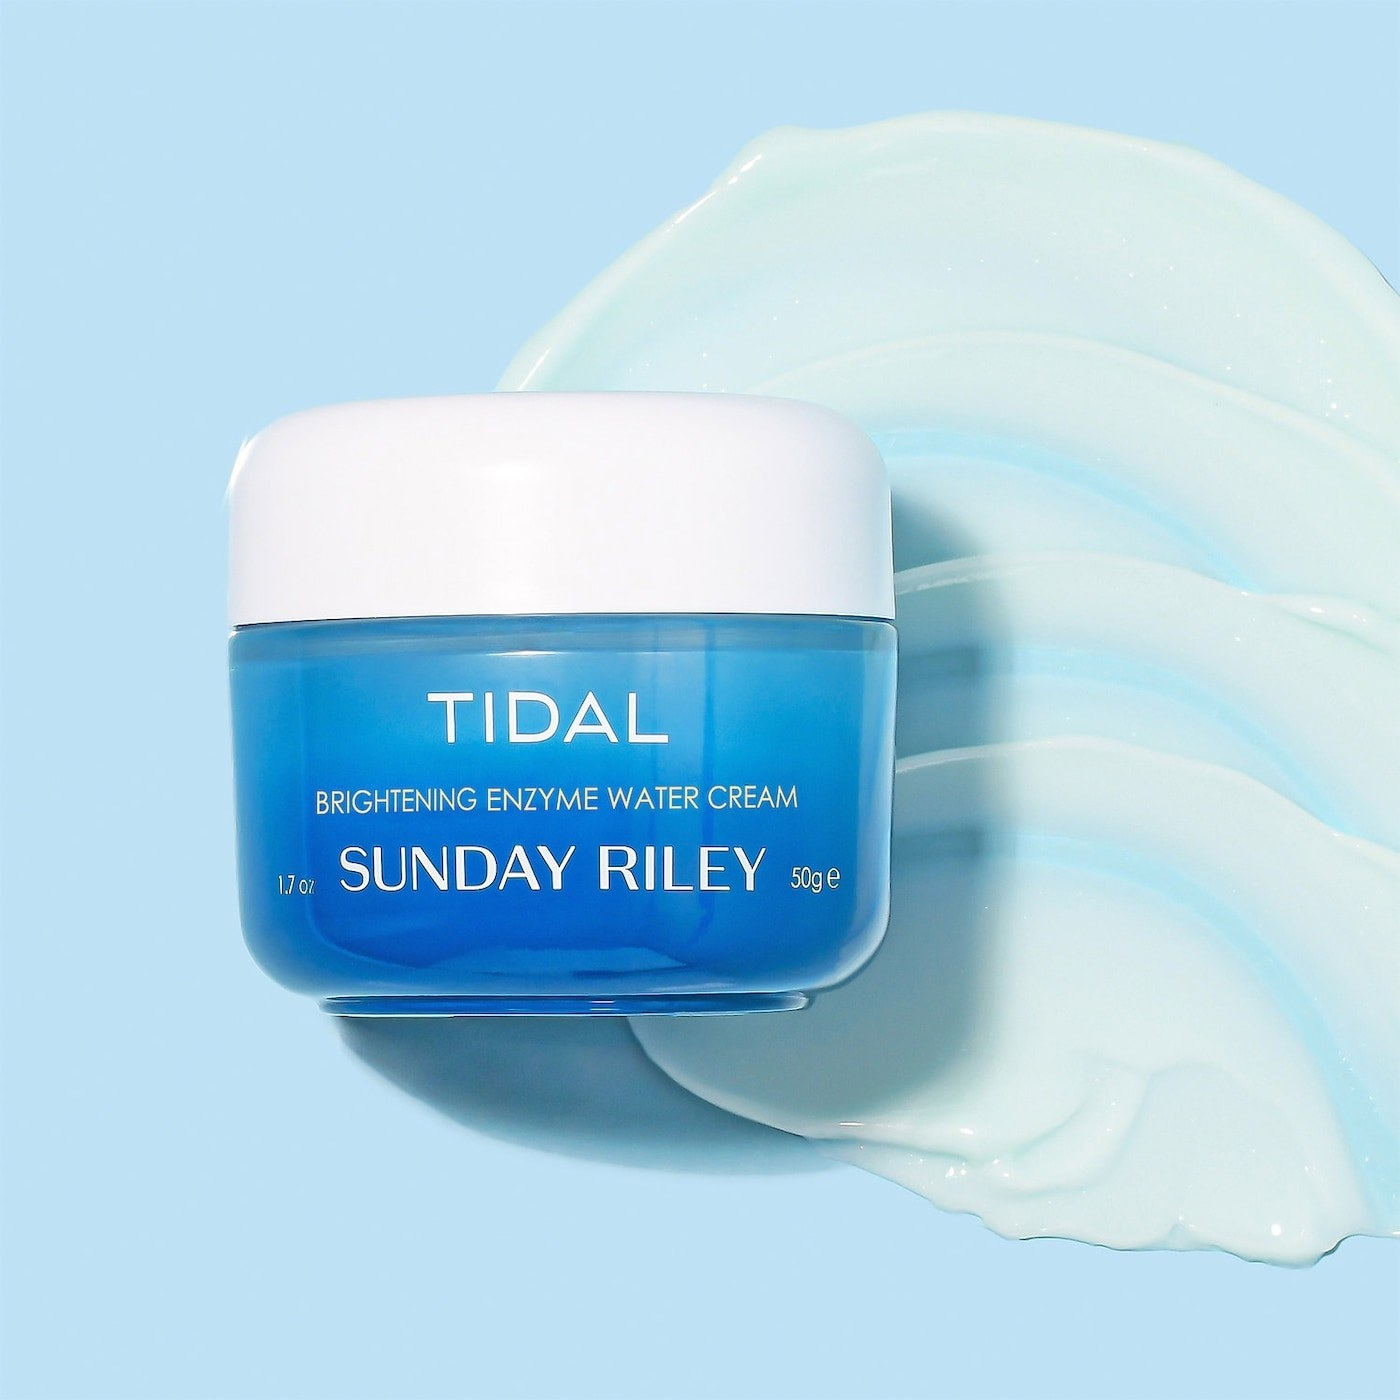 A blue bottle of skincare with a cream texture behind it